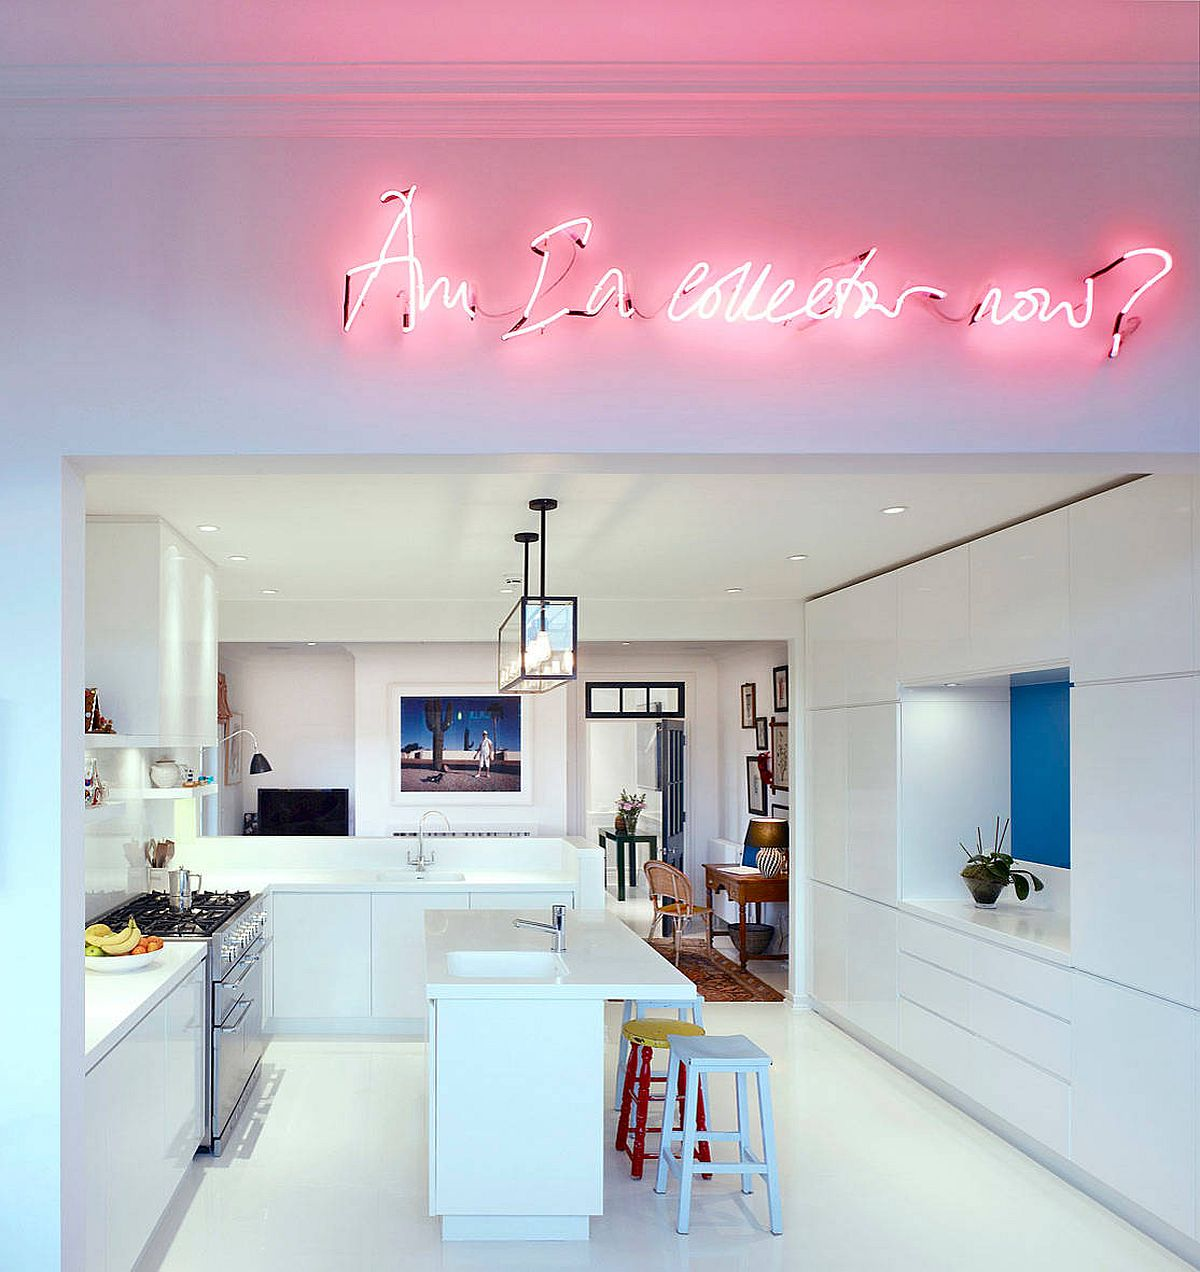 Bright neon sign illuminates the kitchen and living area inside this white Chelsea apartment